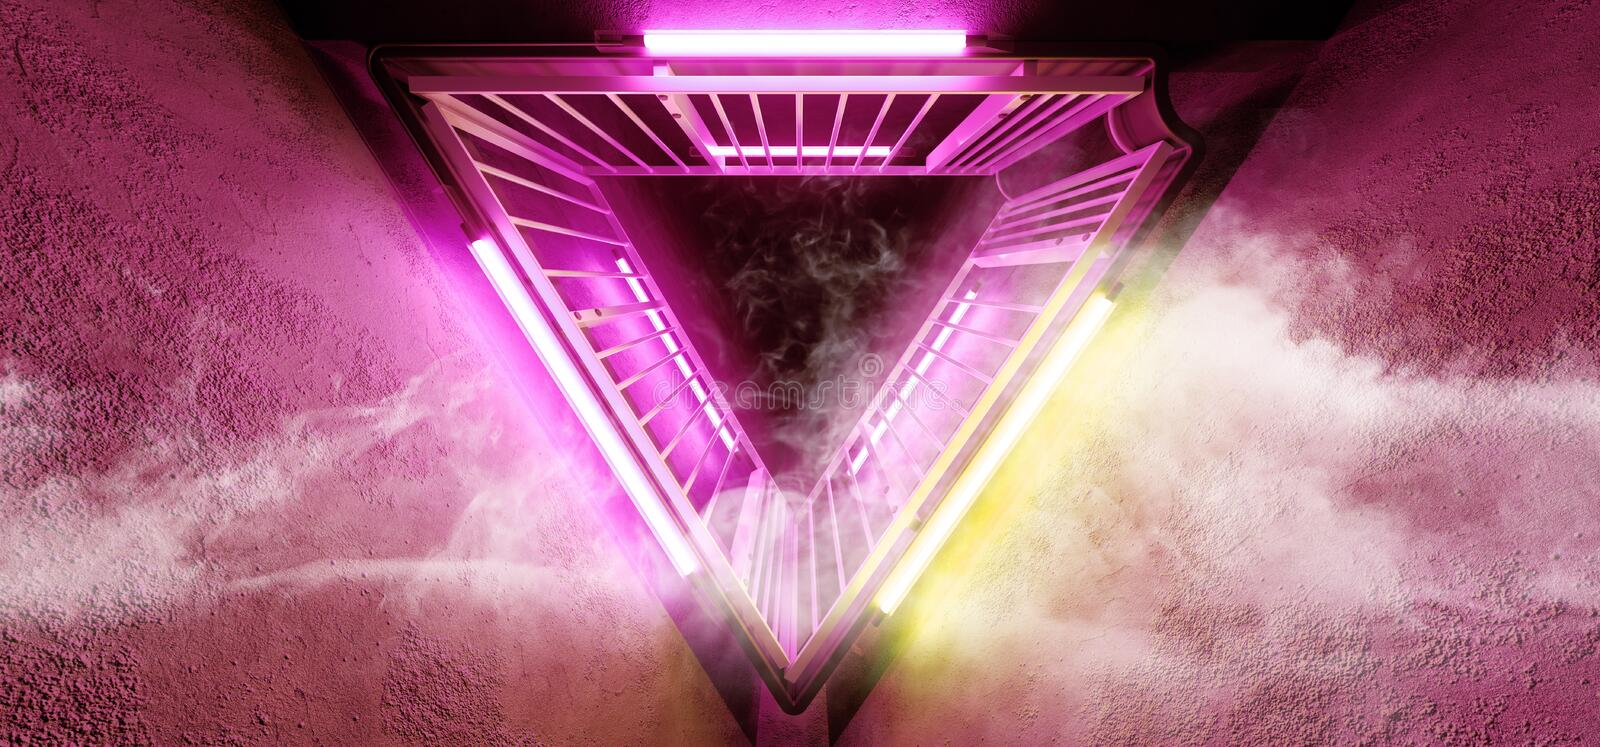 Sci Fi Neon Glowing Dance Lights Triangle Shaped Metal Construction Structure In Dark Smoke Fog Grunge Concrete Tunnel Corridor. Empty Space Purple Orange stock illustration